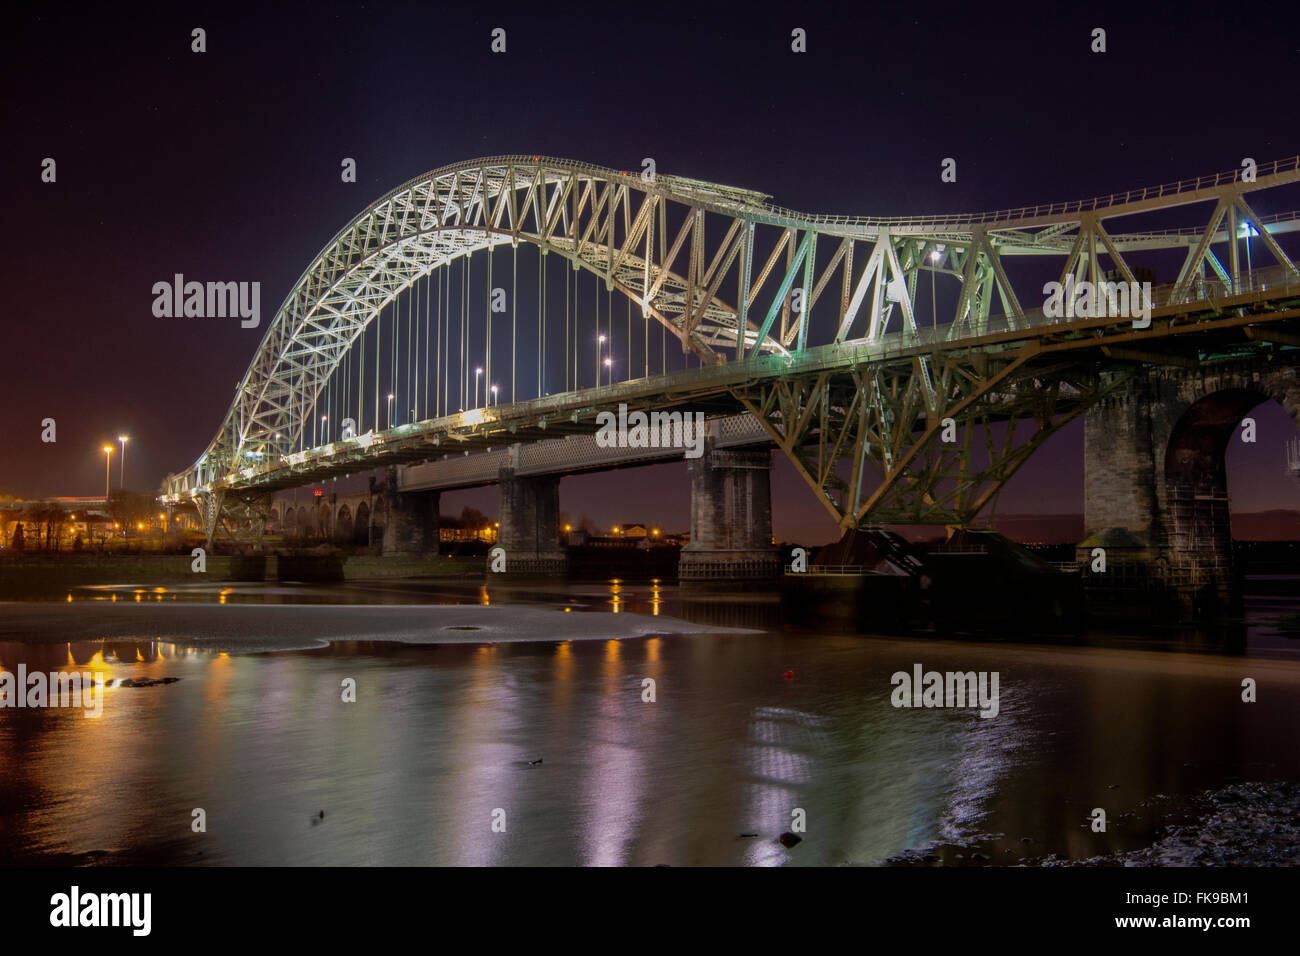 The Jubilee Bridge connecting Runcorn and Widnes across the River Mersey. - Stock Image